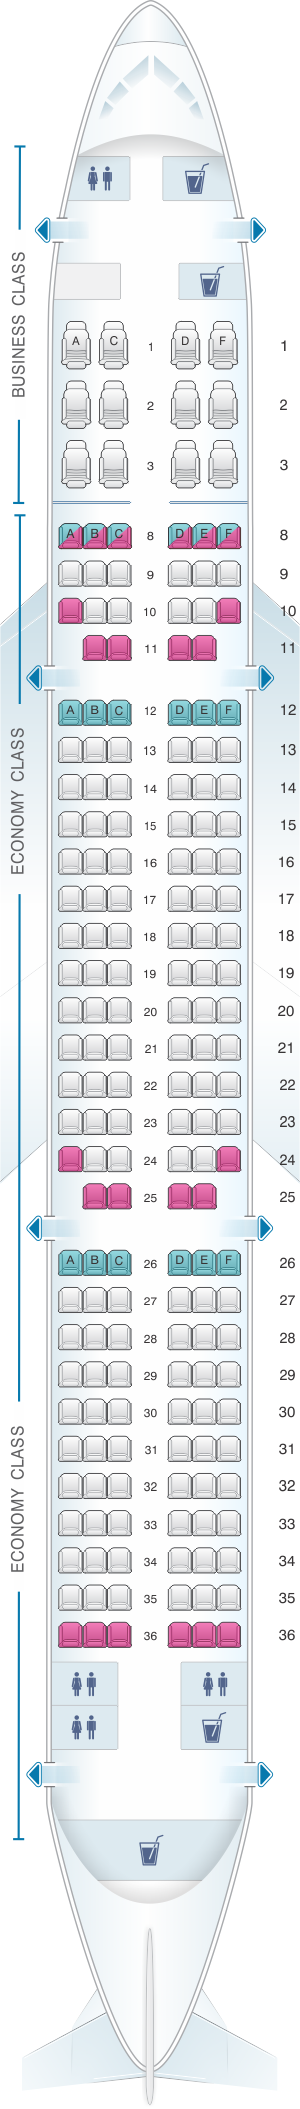 Seat map for Qatar Airways Airbus A321 200 182pax